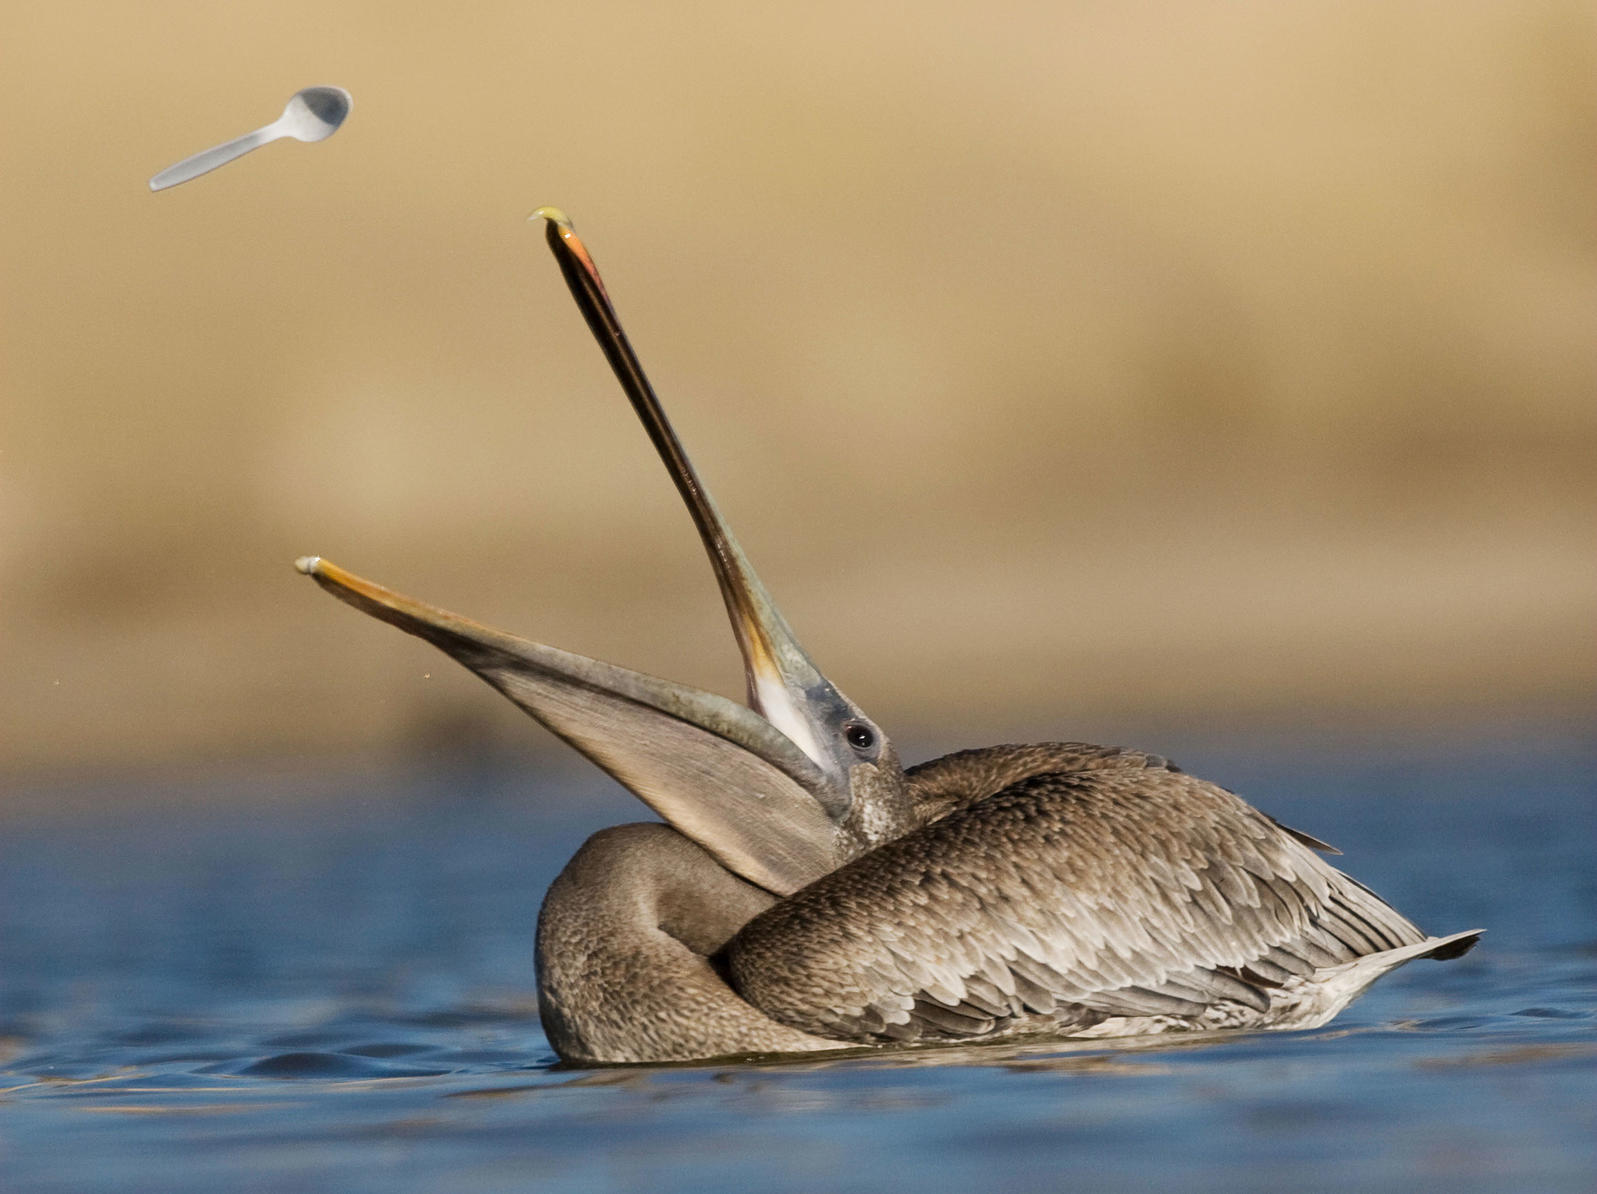 Brown Pelican juvenile tossing plastic spoon up in the air. Sebastian Kennerknecht/Minden Pictures